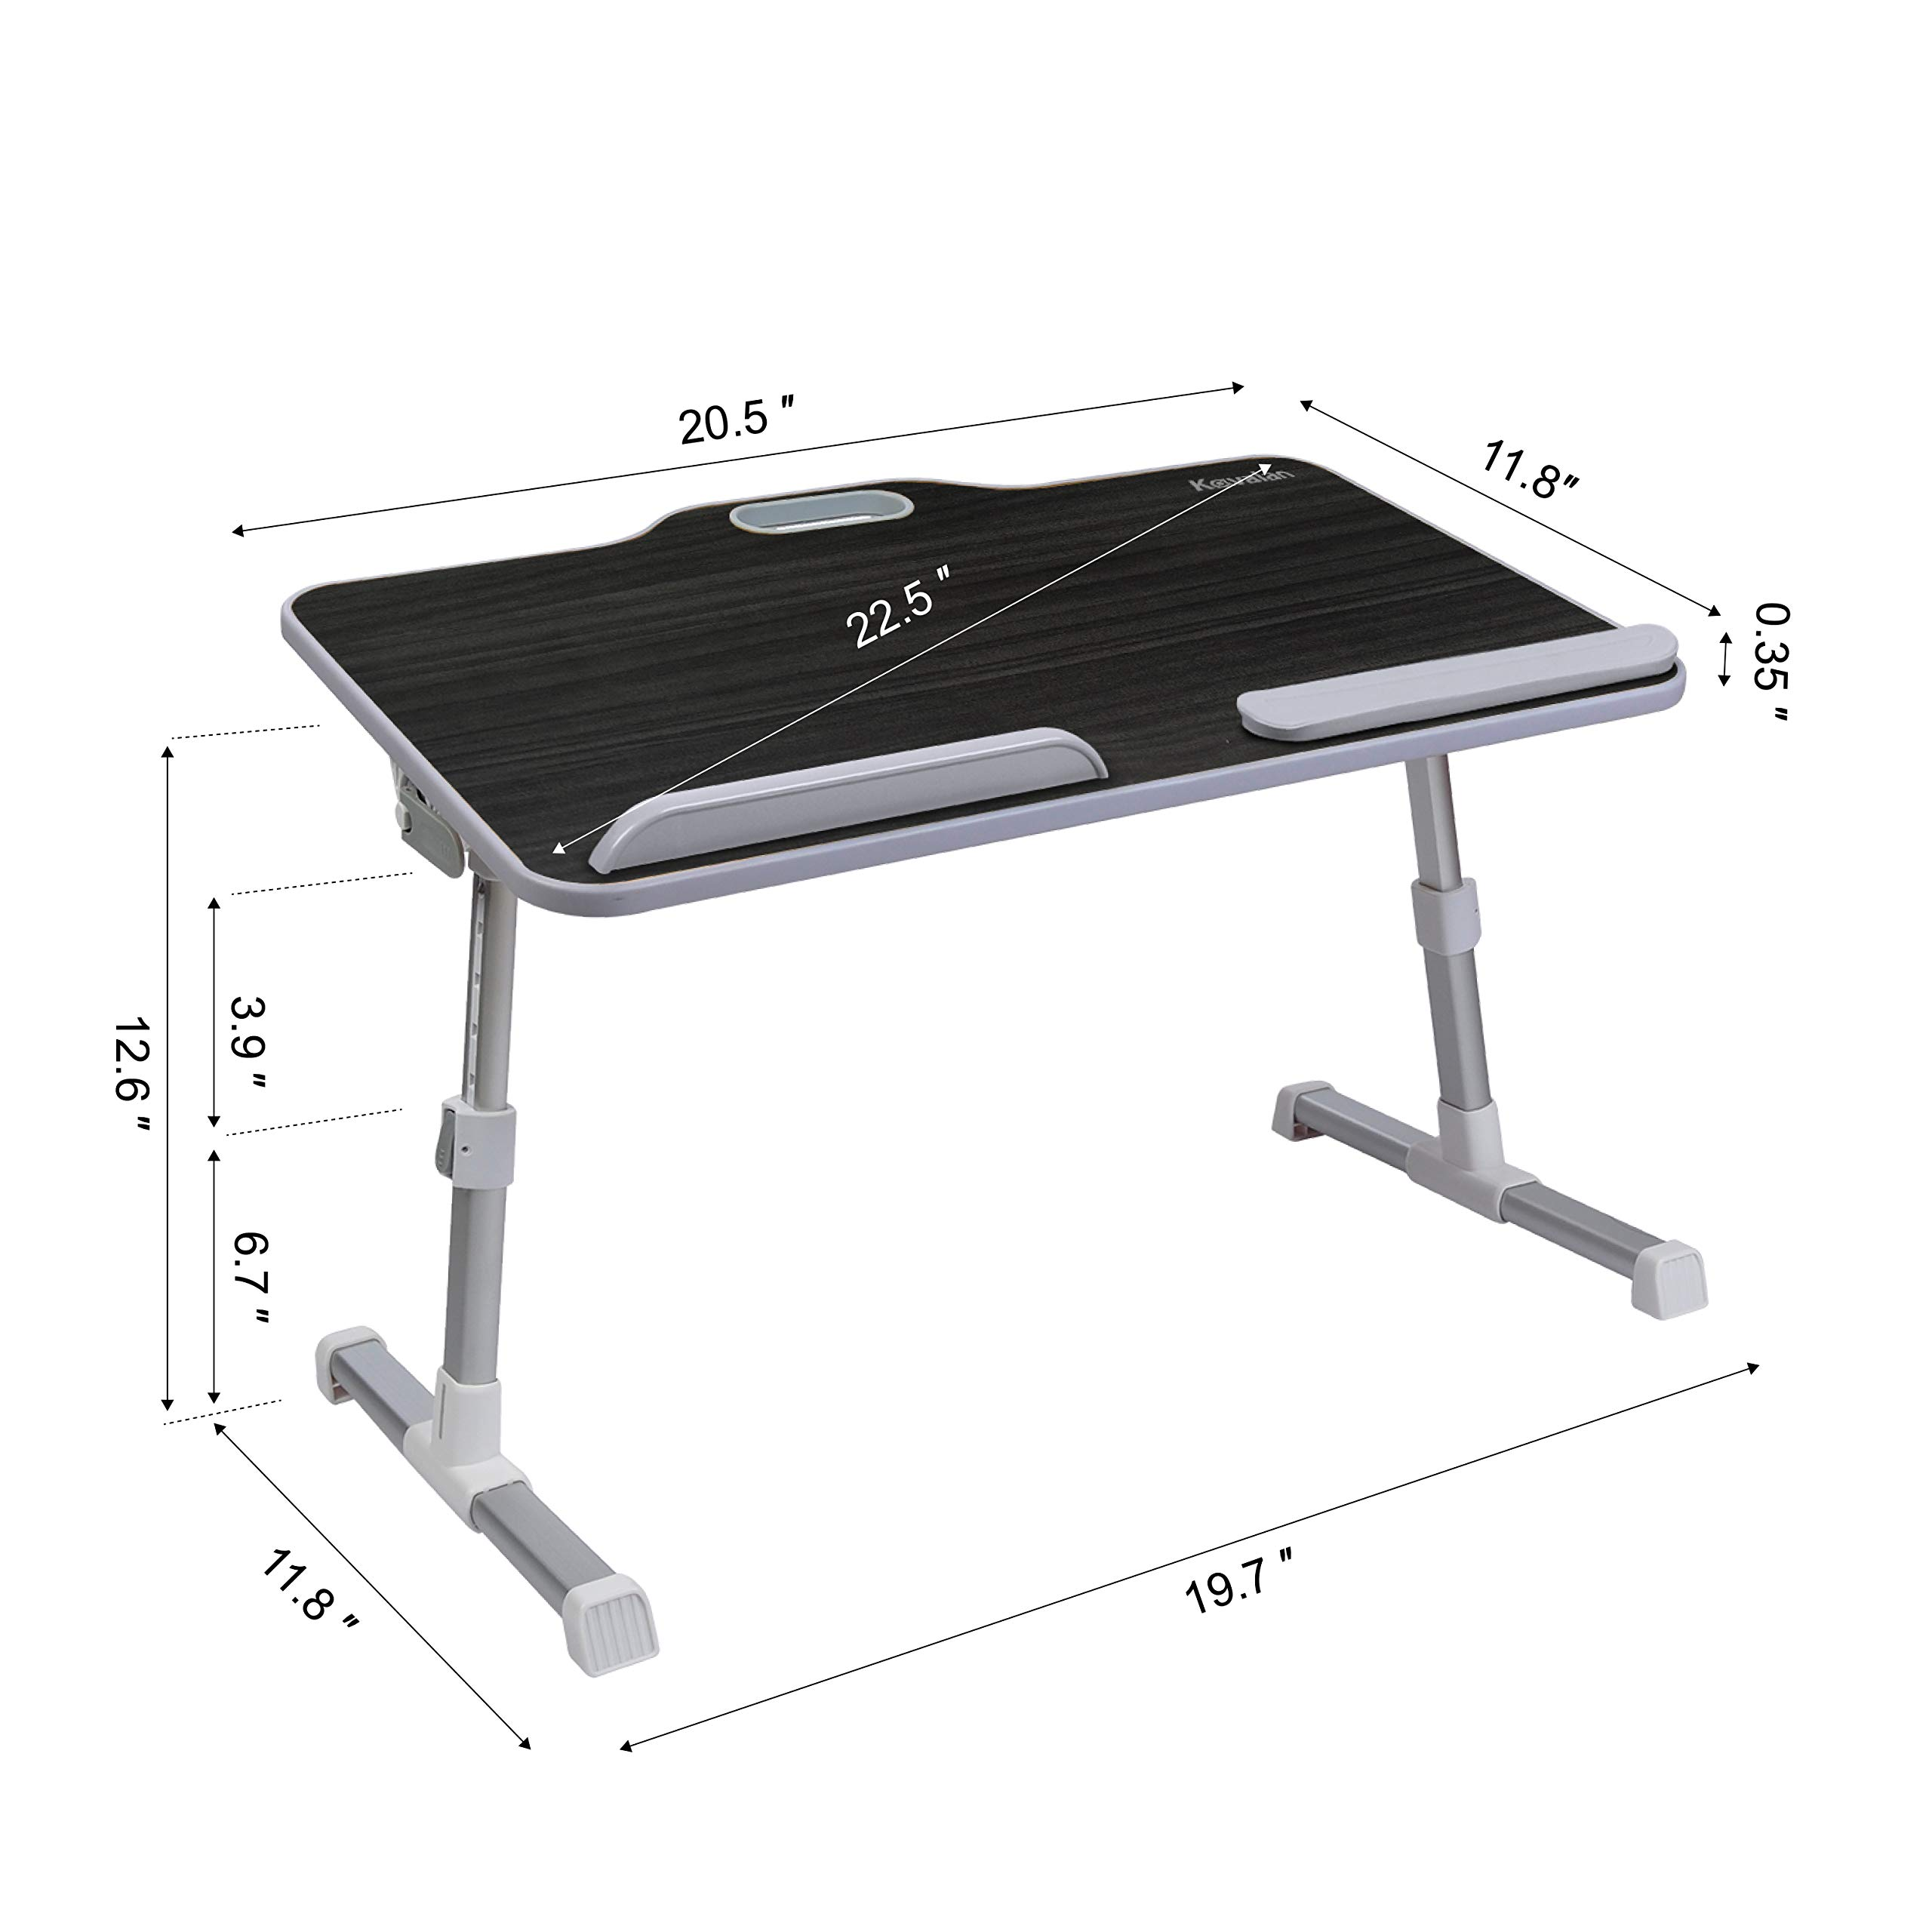 Kavalan Laptop Table for Bed, Height & Angle Adjustable Sit and Stand Desk, Portable Standing Table with Handle, Foldable Bed Desk for Laptop and Writing in Sofa Couch Floor